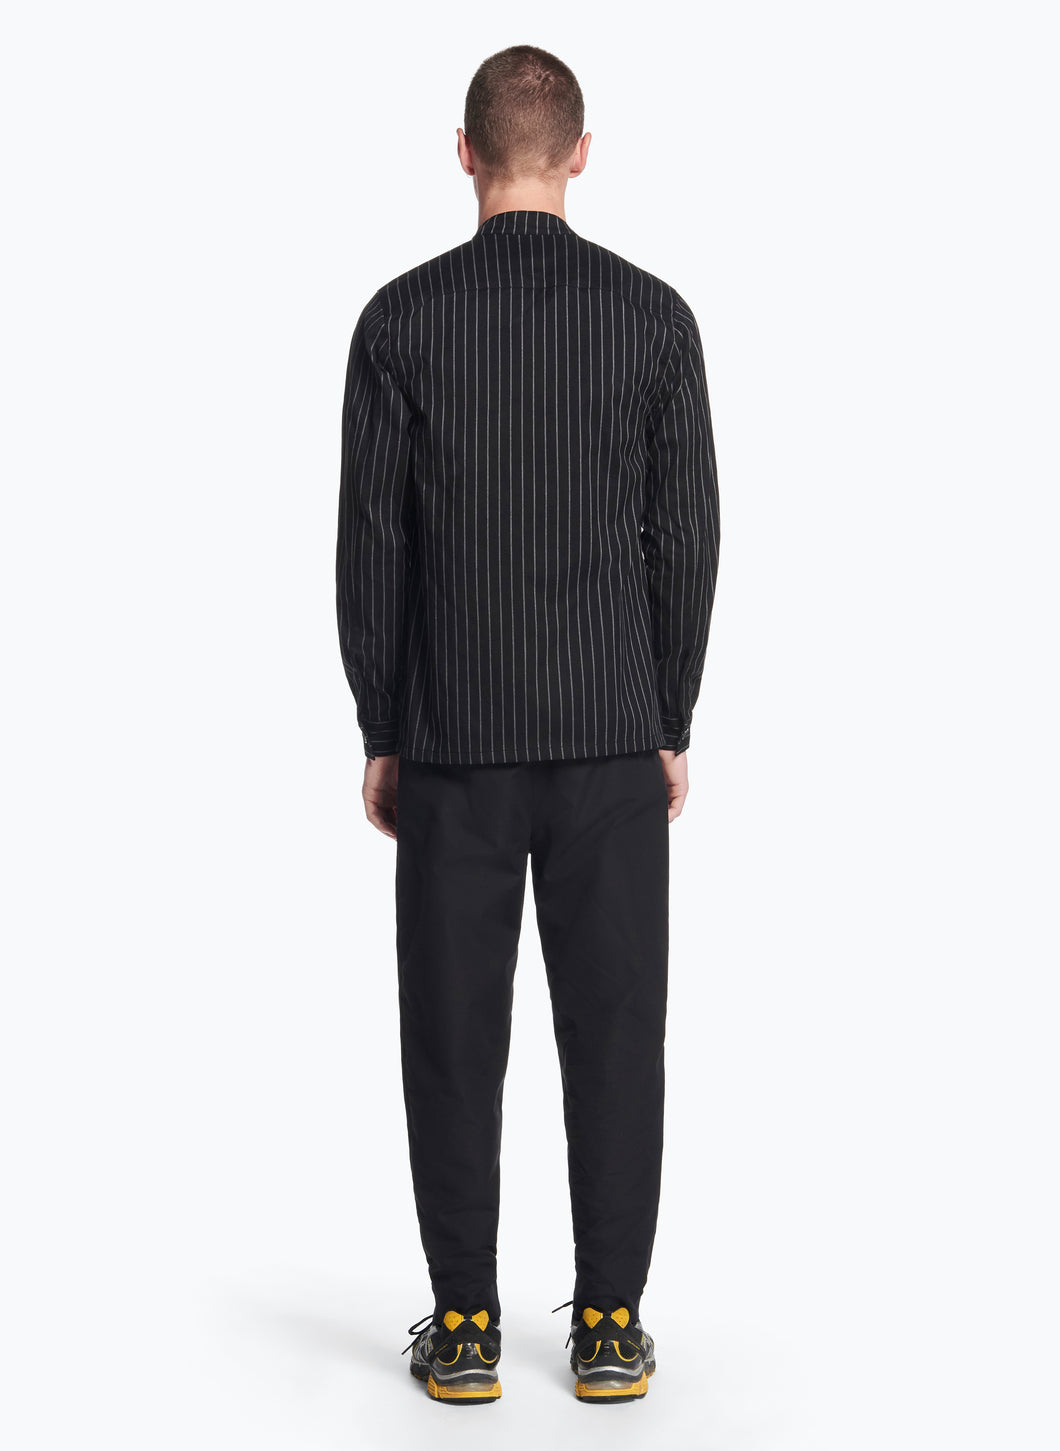 Mandarin Collar Overshirt in Black Striped Technical Gabardine